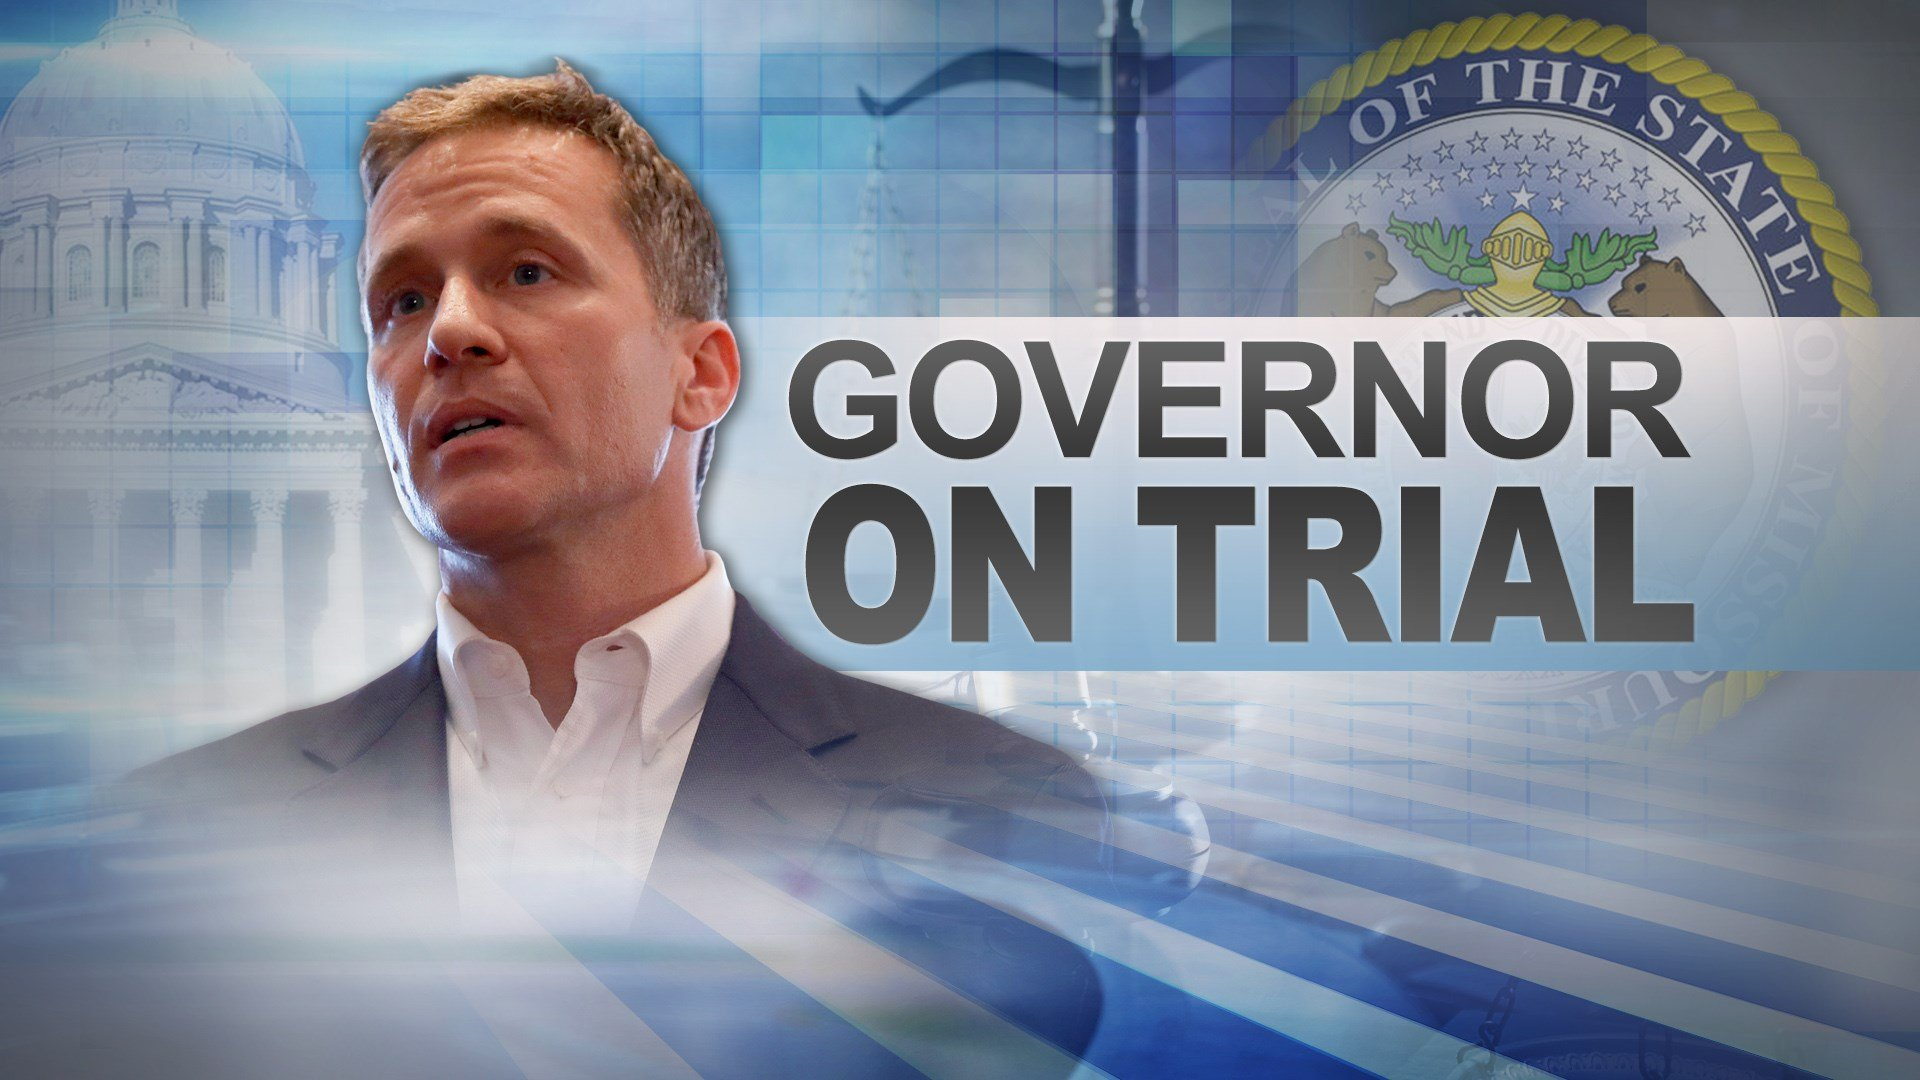 Opening arguments had been expected to begin Monday in the criminal trial of Missouri Gov. Eric Greitens, but attorneys instead are still sorting through dozens of prospective jurors who will decide the case. (KCTV5)